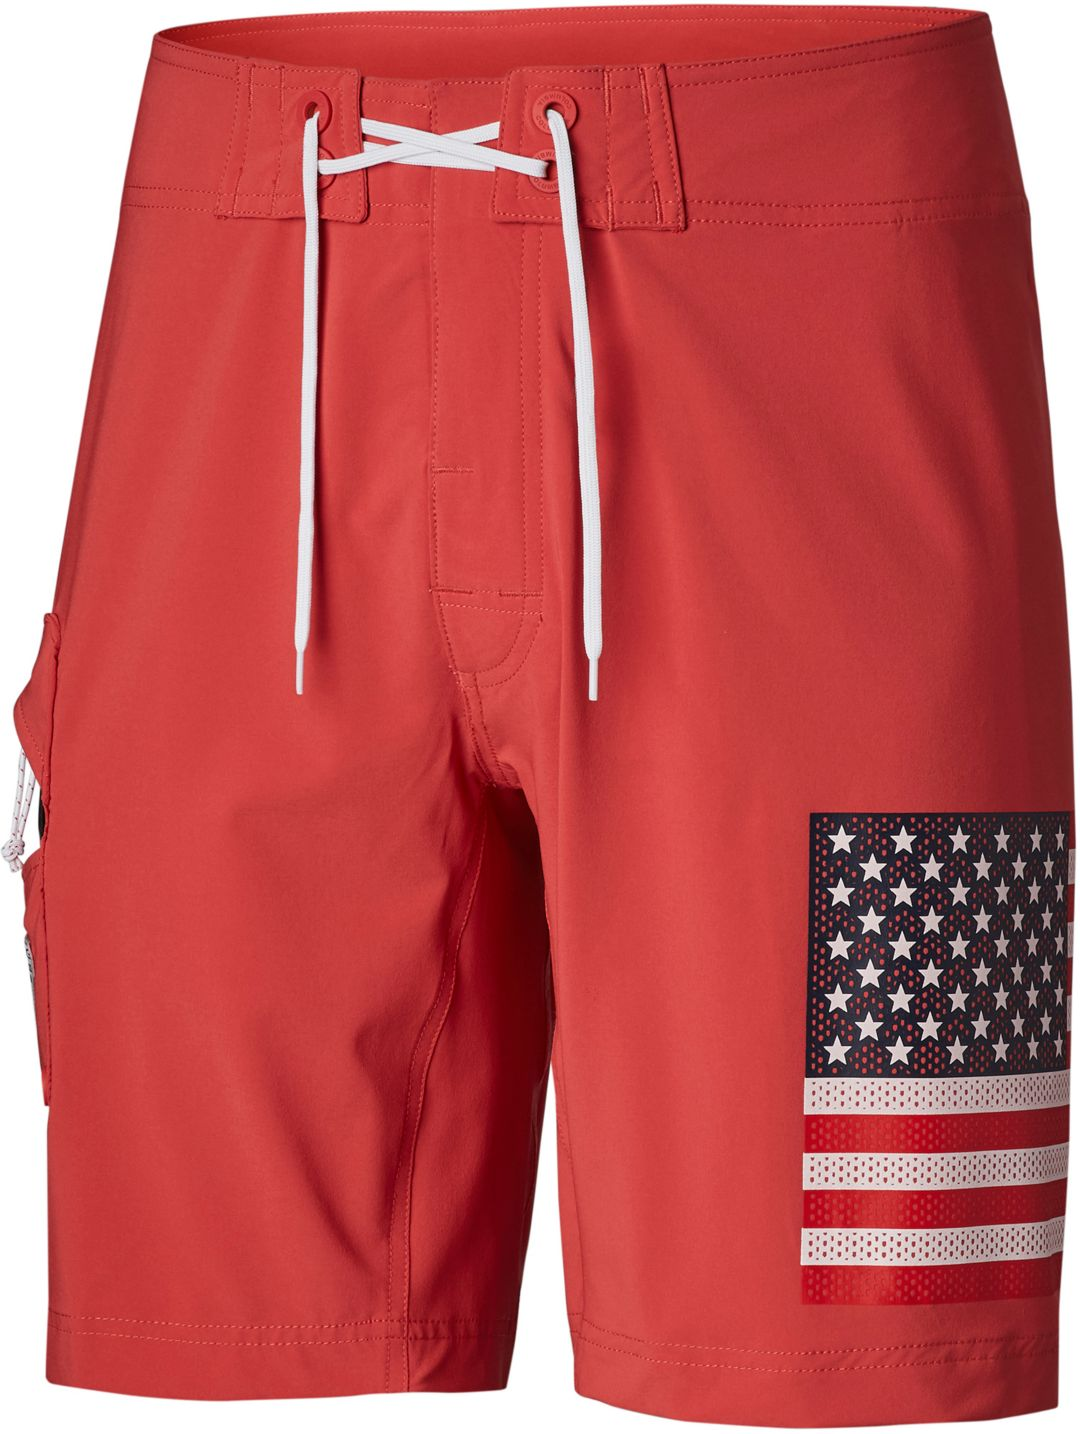 f7767bc11cf Columbia Men's PFG Fish Series Board Shorts | Field & Stream